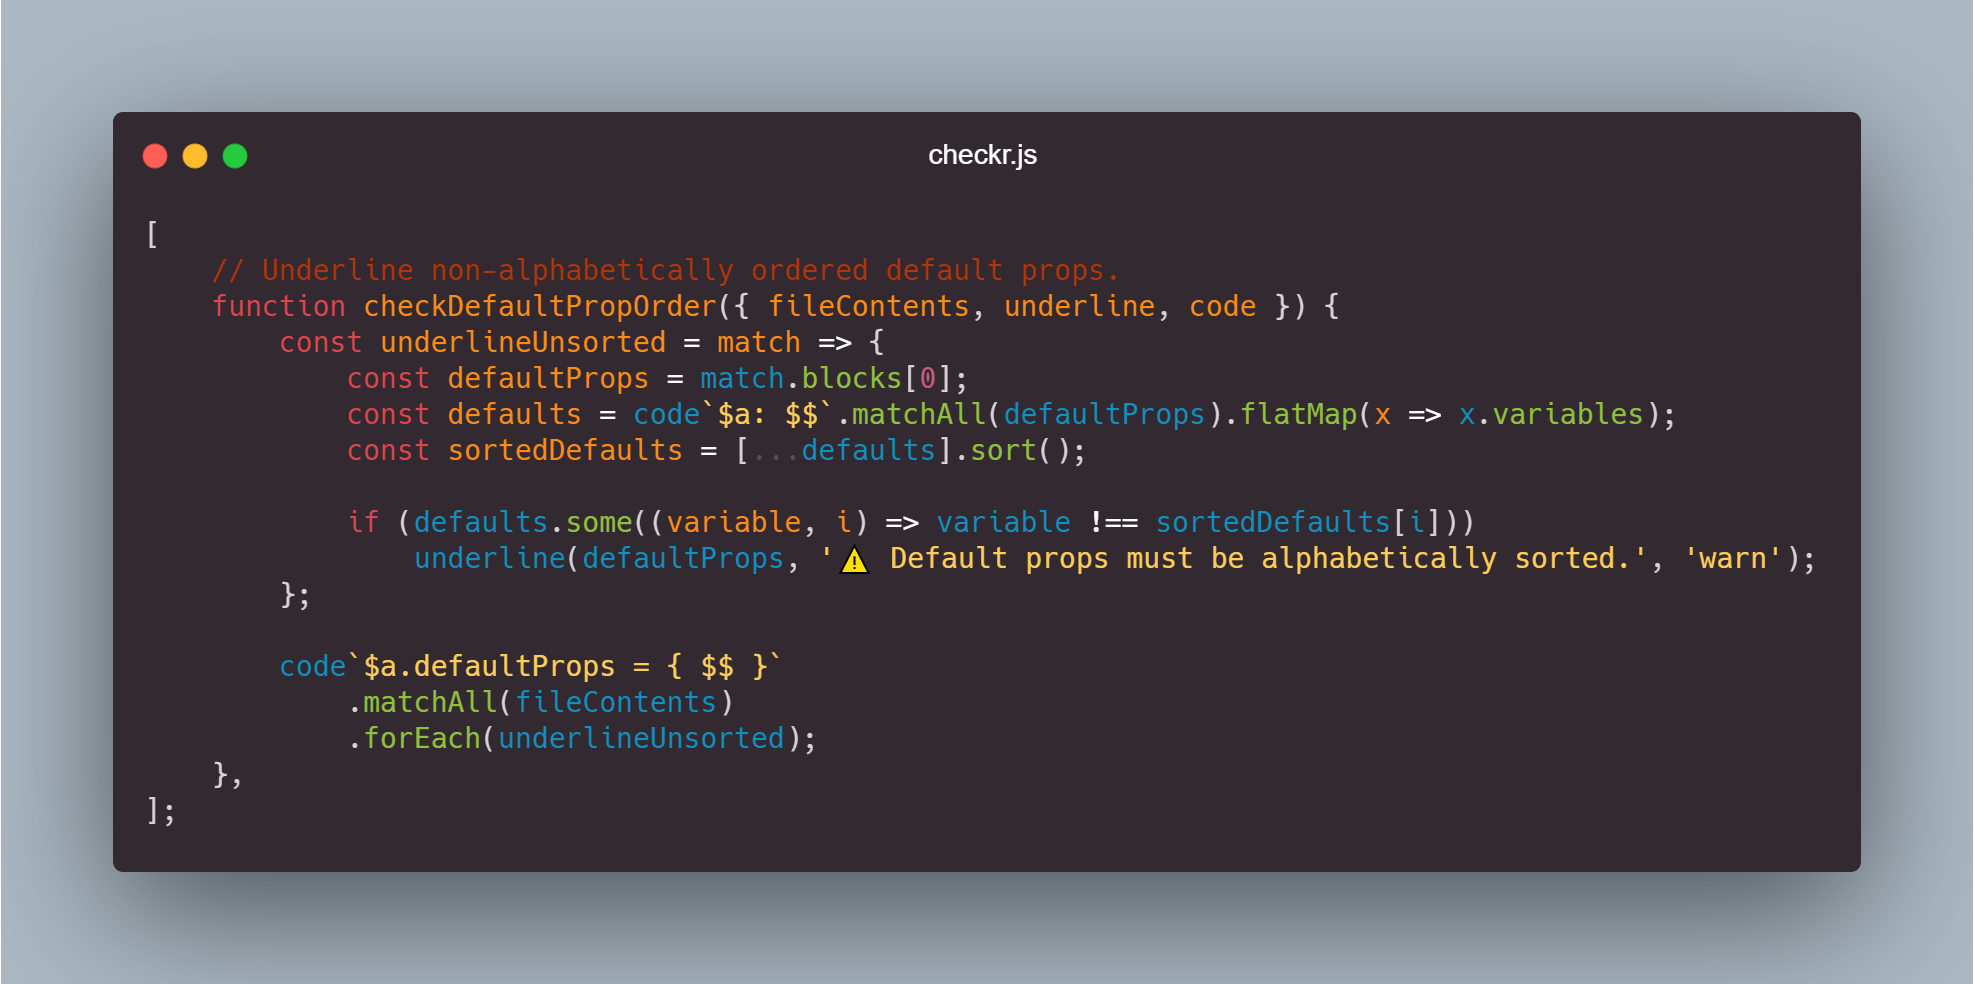 Example checkr.js rule